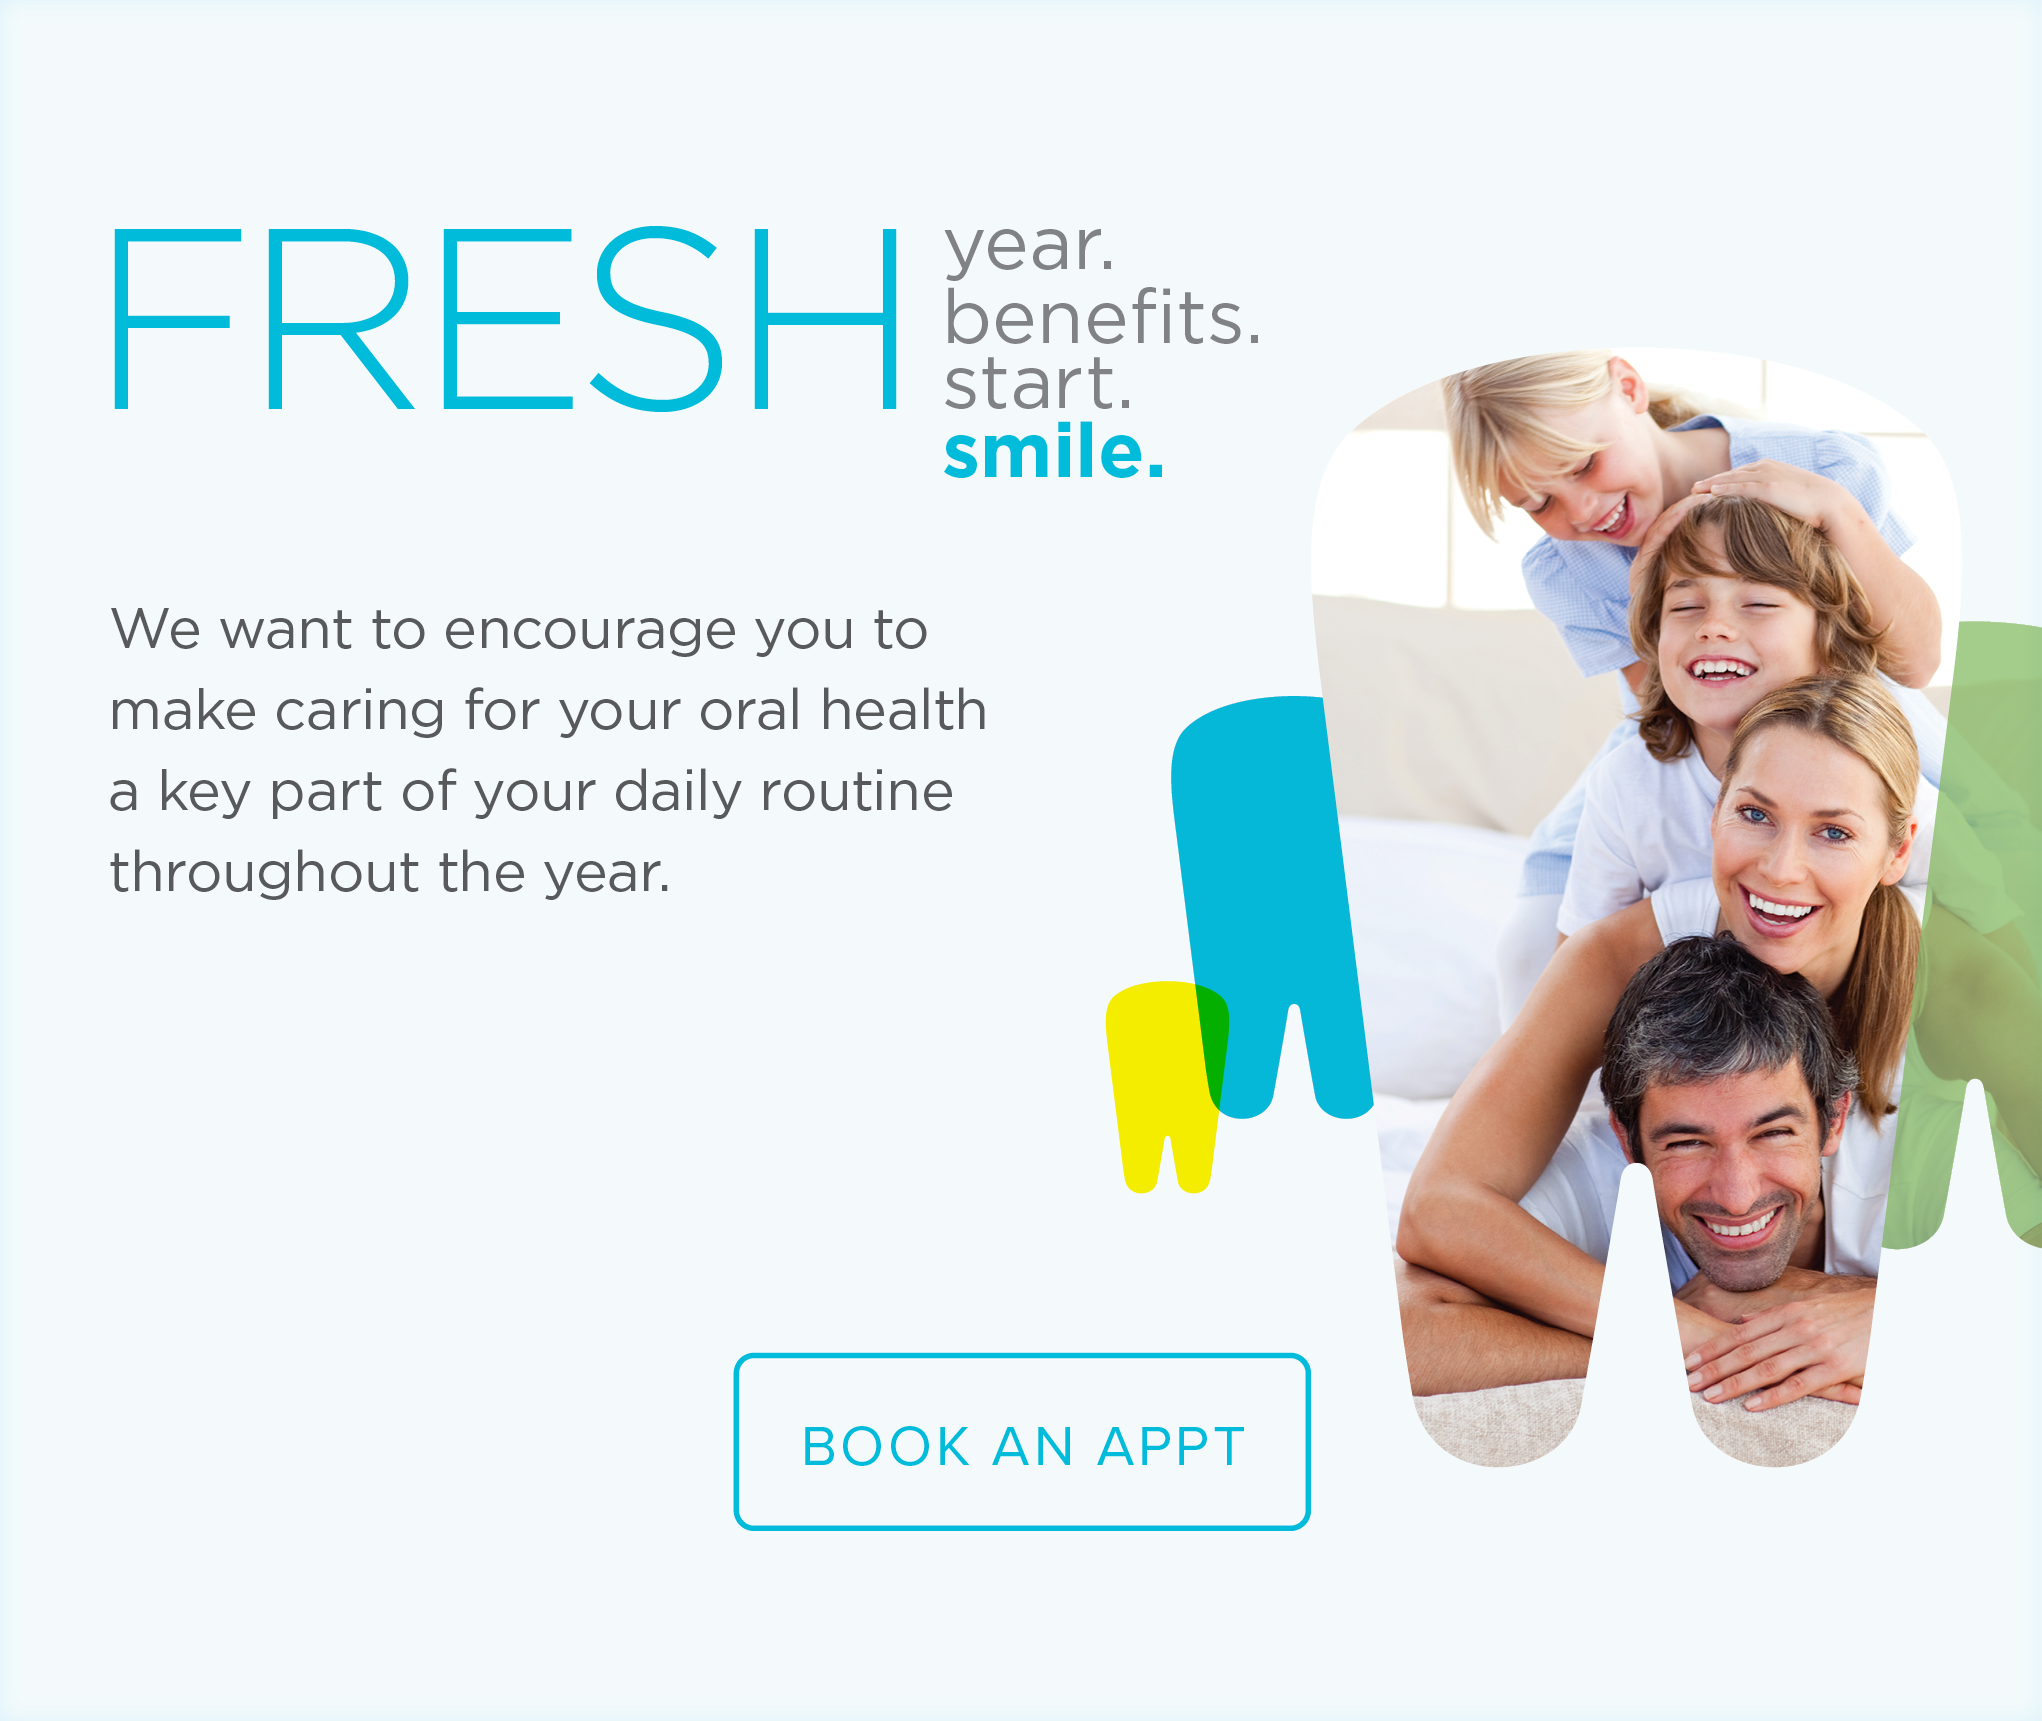 Las Vegas Modern Dentistry and Orthodontics - Make the Most of Your Benefits